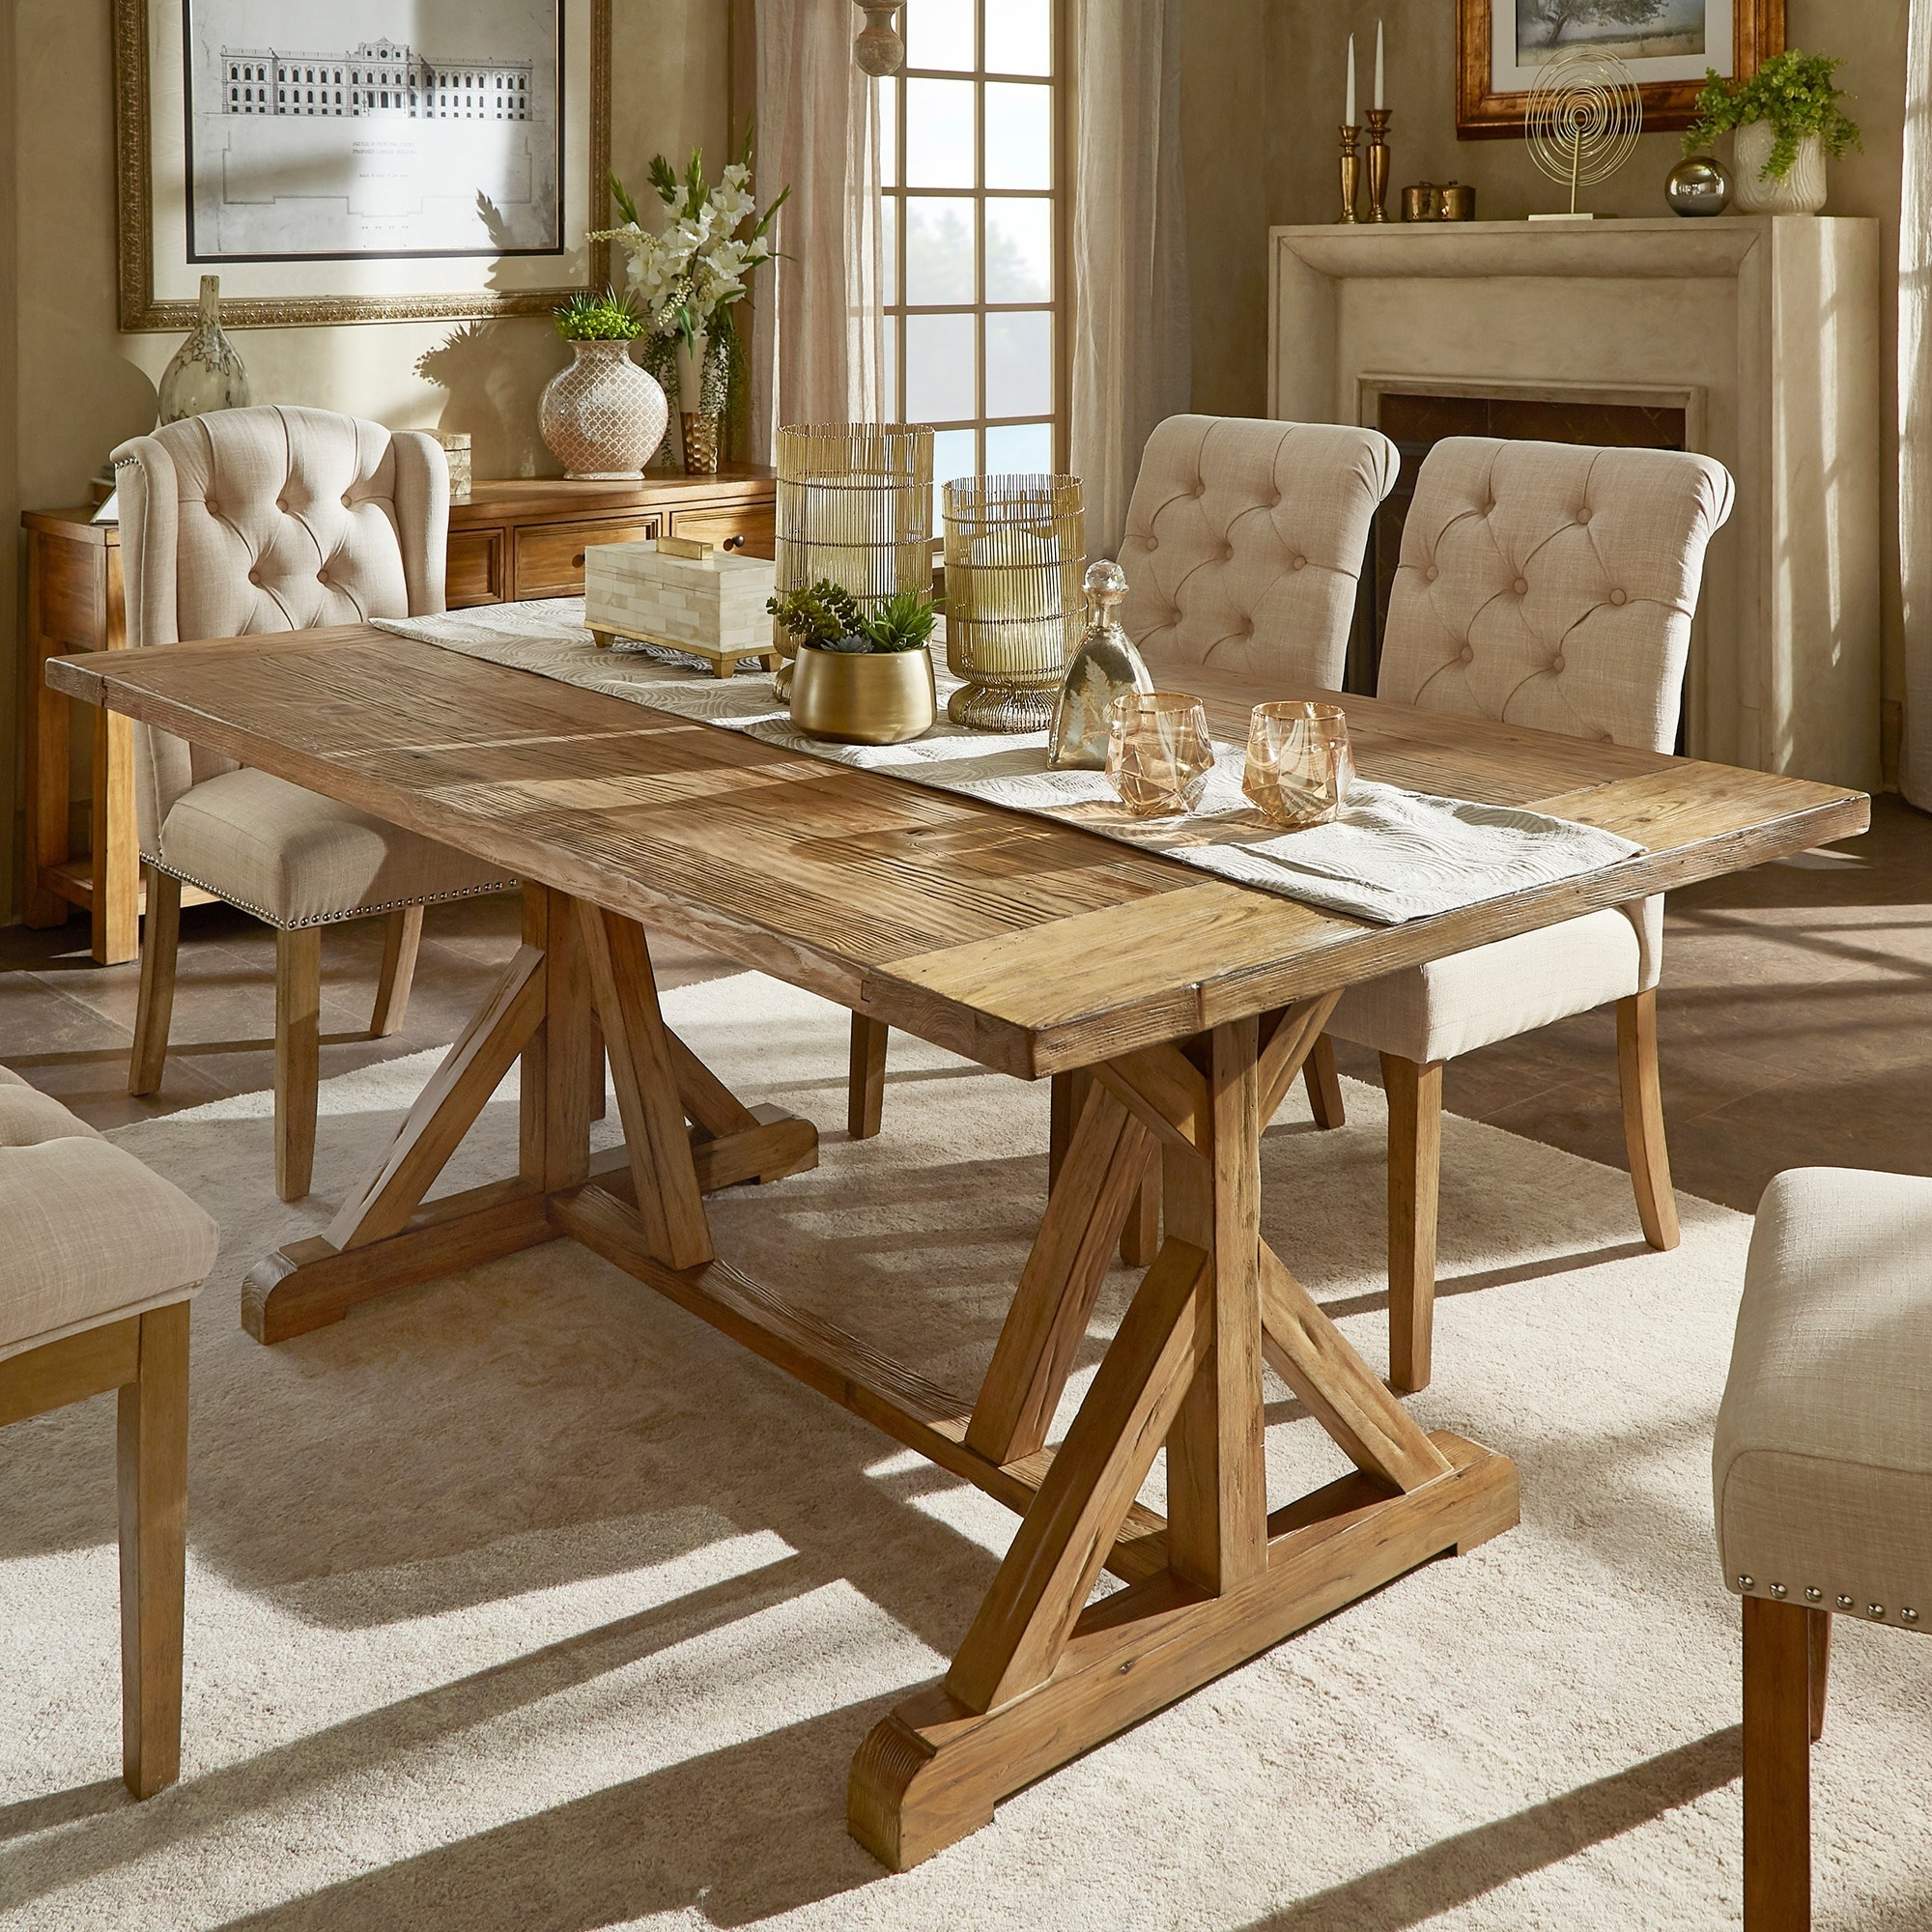 benchwright rustic pine accent trestle reinforced dining table inspire artisan room furniture small dresser lamps folding for space wine rack round top home goods desk outdoor